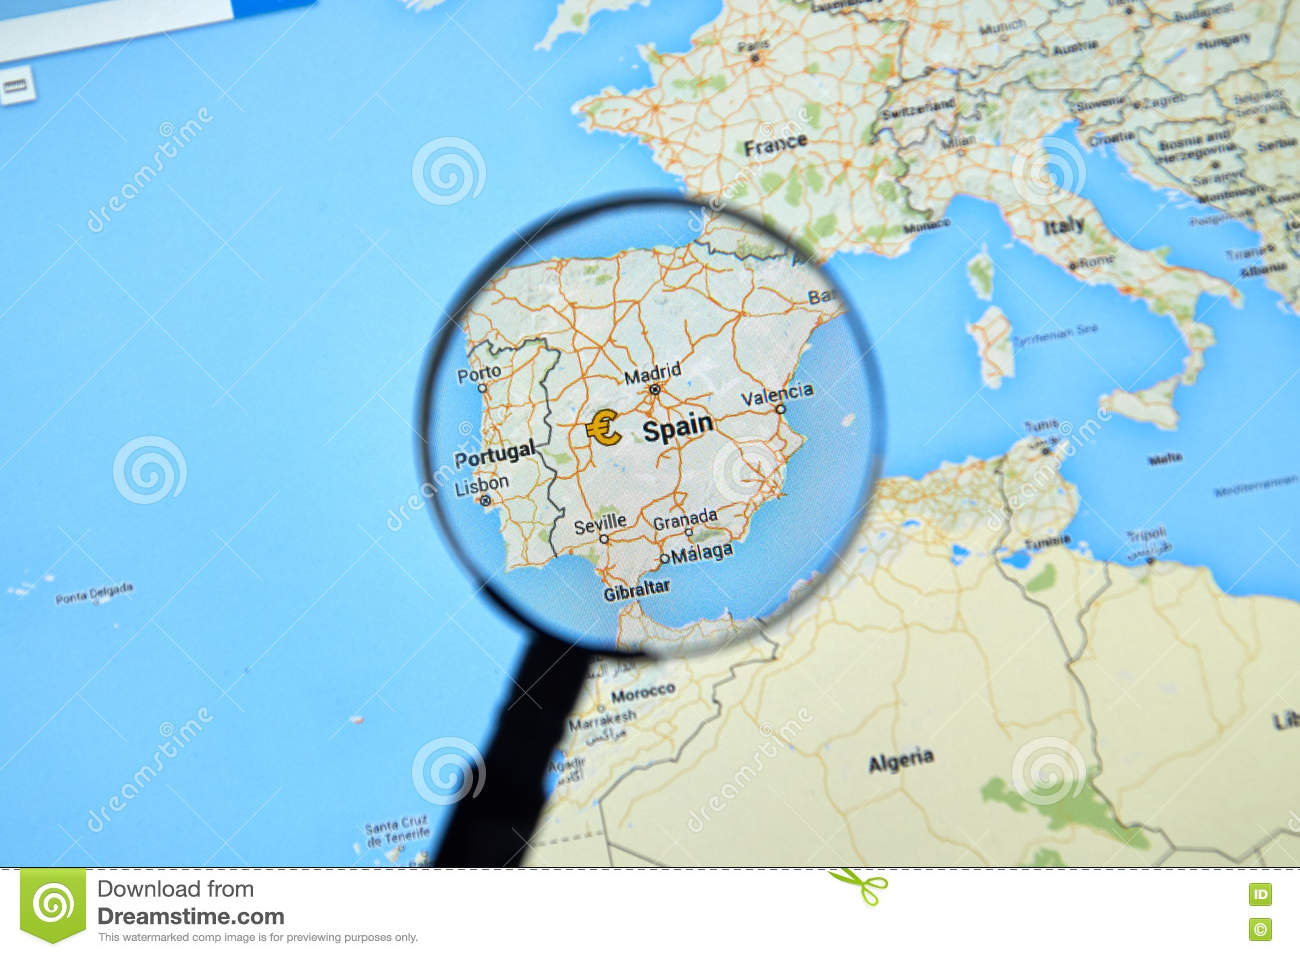 Google Earth Map Of Spain.Spain On Google Maps Editorial Stock Image Image Of Canada 73615669